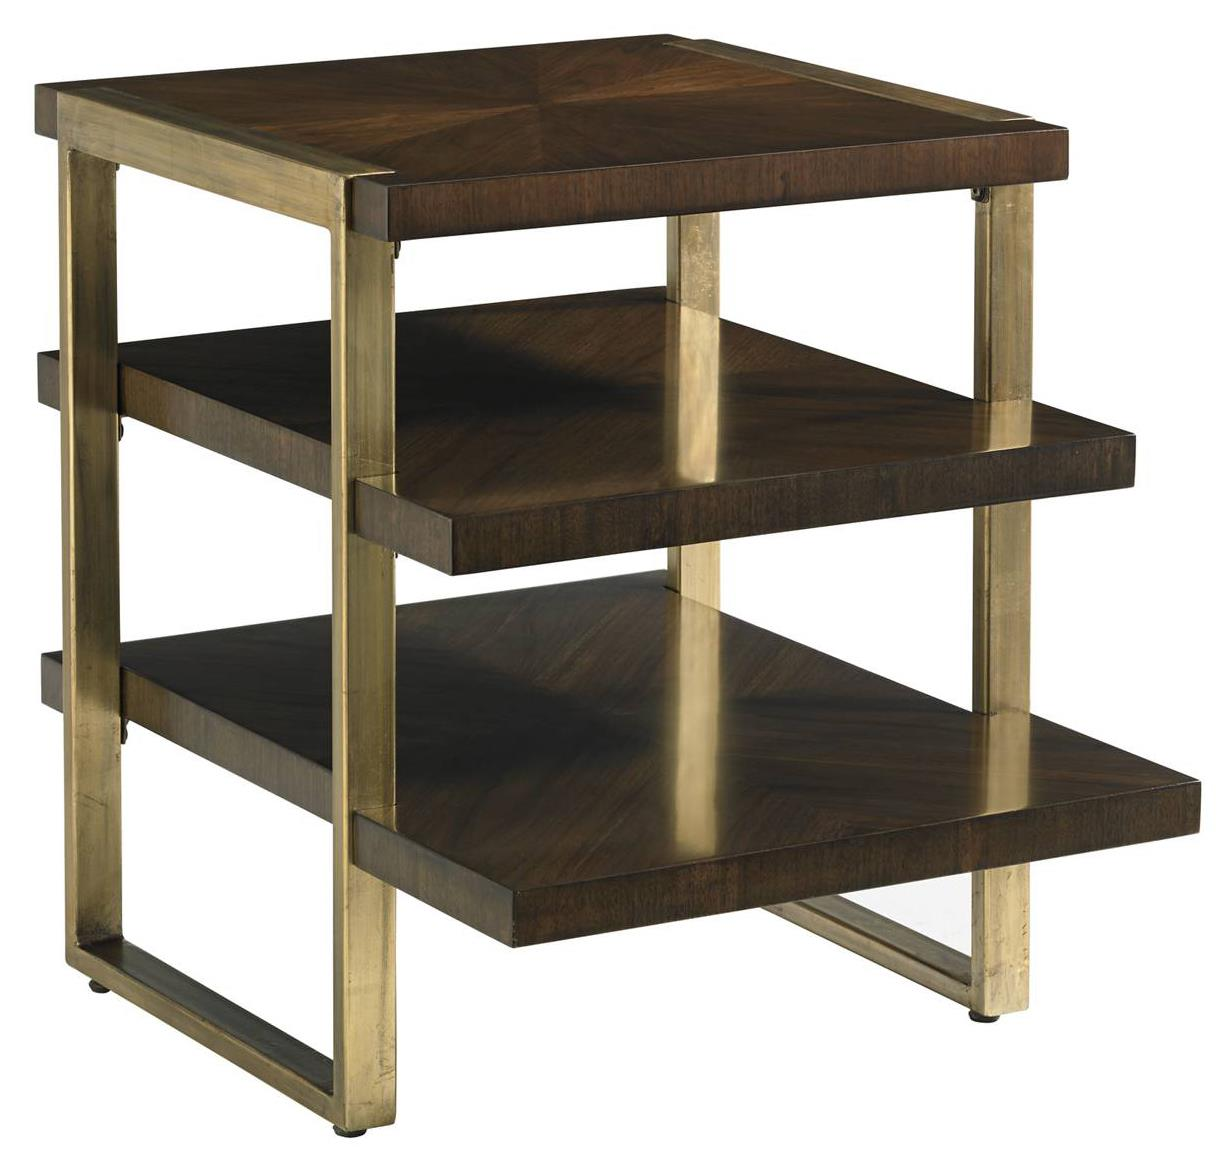 Stanley Furniture Crestaire Autry End Table - Item Number: 436-15-08